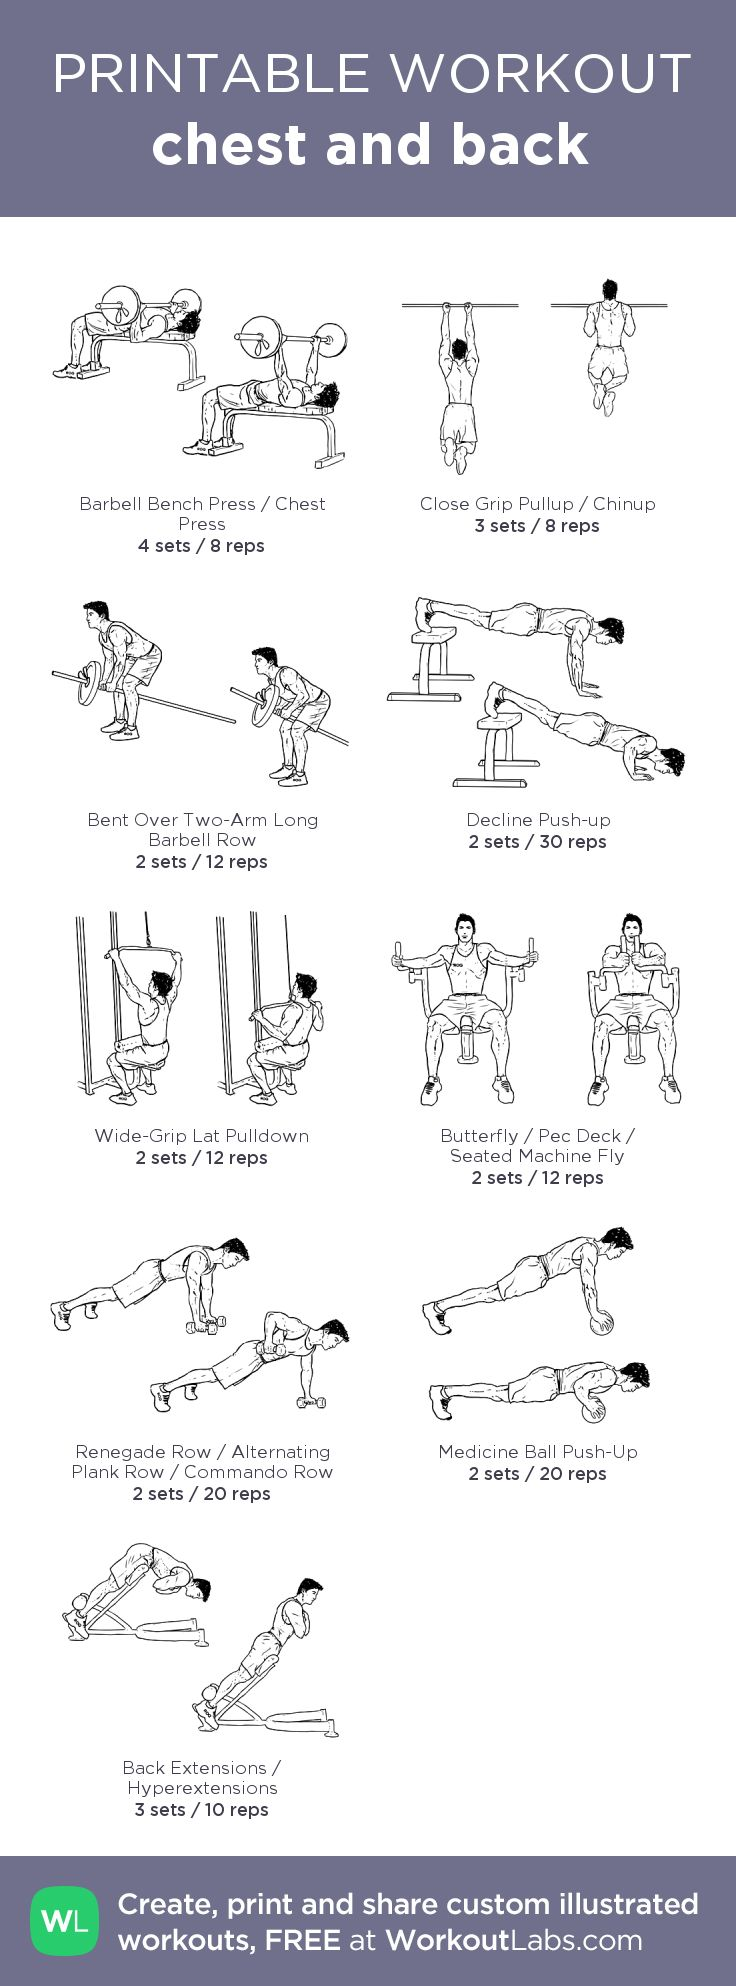 chest and back: my visual workout created at WorkoutLabs.com • Click through to customize and download as a FREE PDF! #customworkout